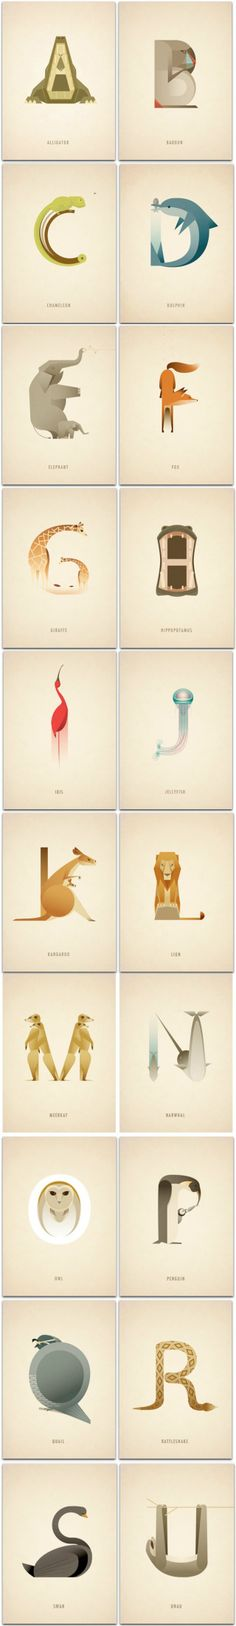 London-based artist Marcus Reed imagined this beautiful alphabet using wildlife to make the shape of the letters. Each animal corresponds to his first letter, offering to learn while having fun. A successful graphic process, that will delight young and old. - http://www.marcusreed.com/animalalphabet2.html